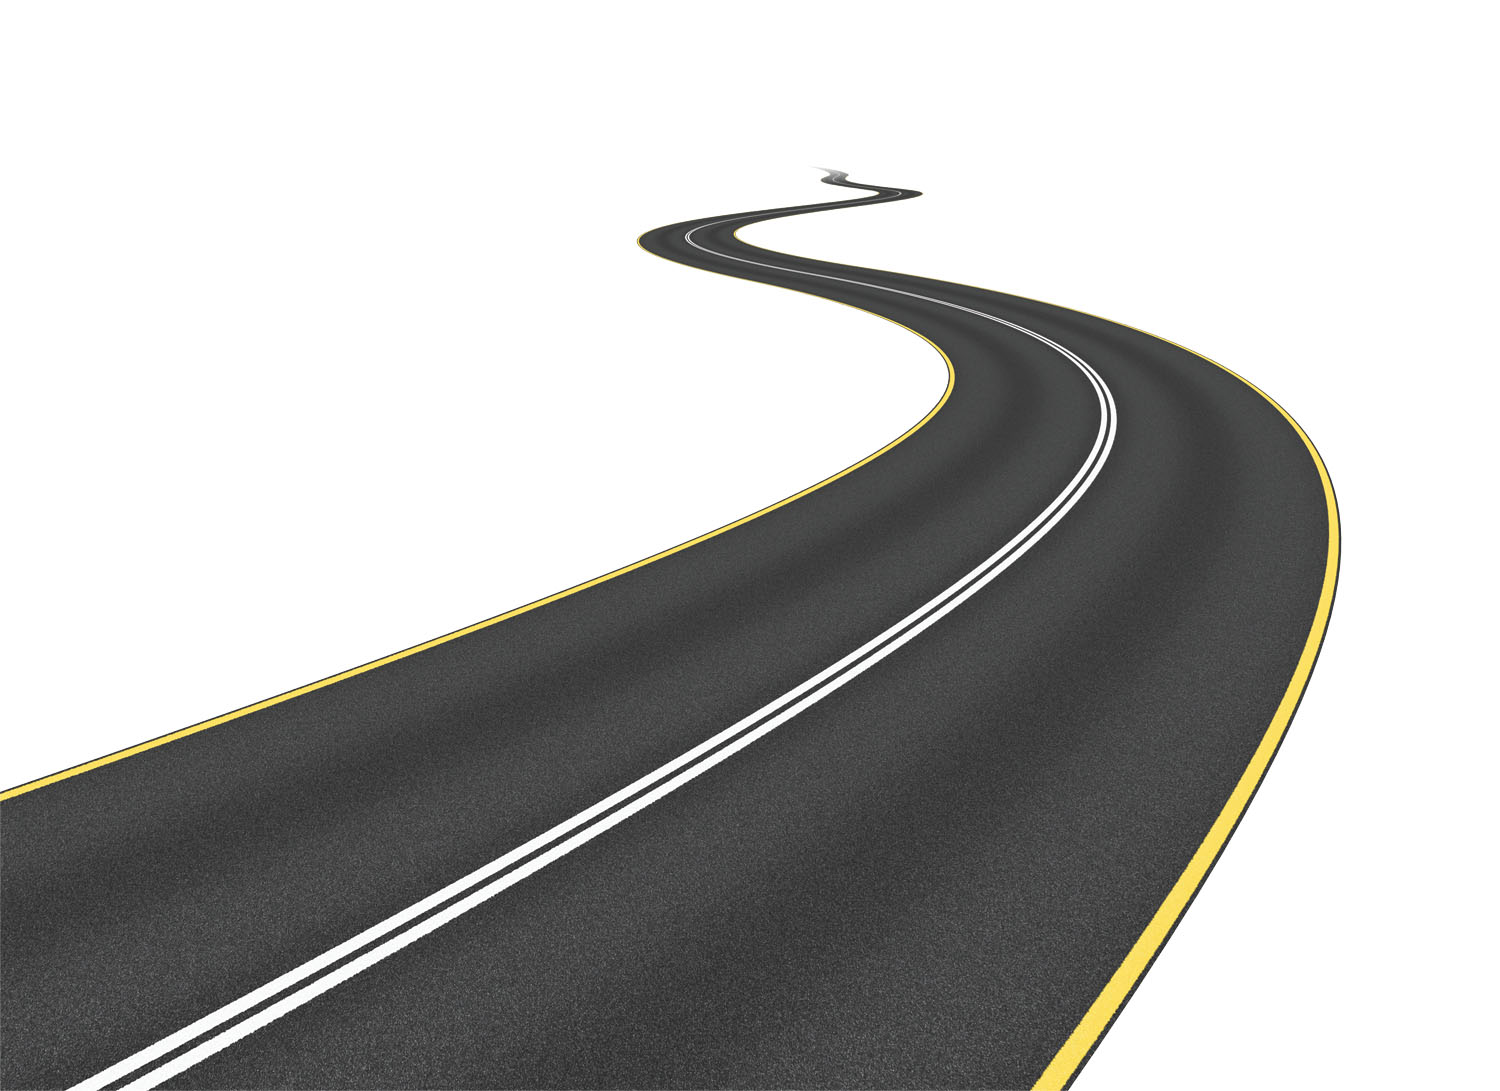 hight resolution of long curvy road clipart